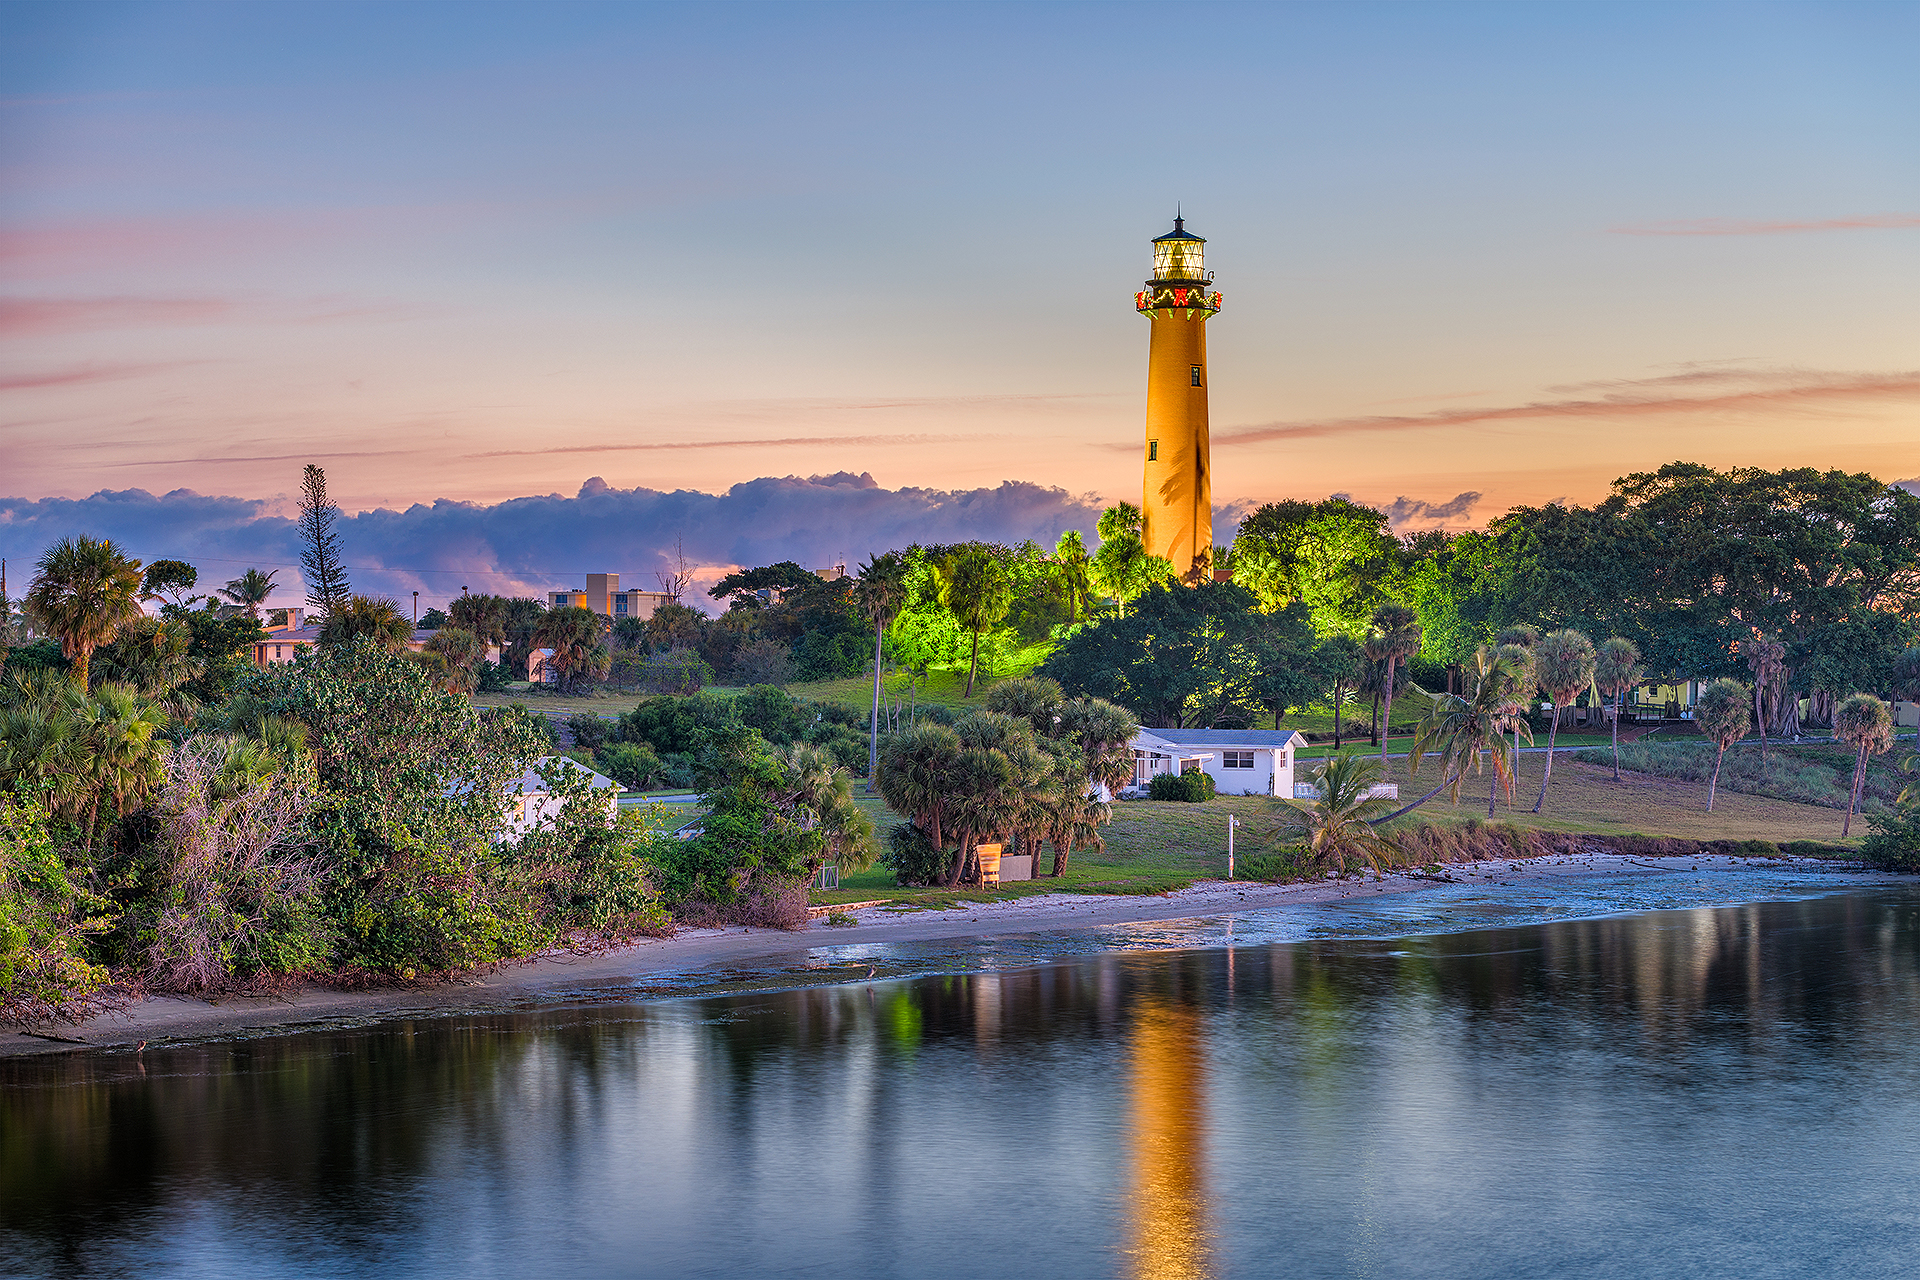 Jupiter Inlet Lighthouse in Juno Beach, Florida; Courtesy of Sean Pavone/Shutterstock.com